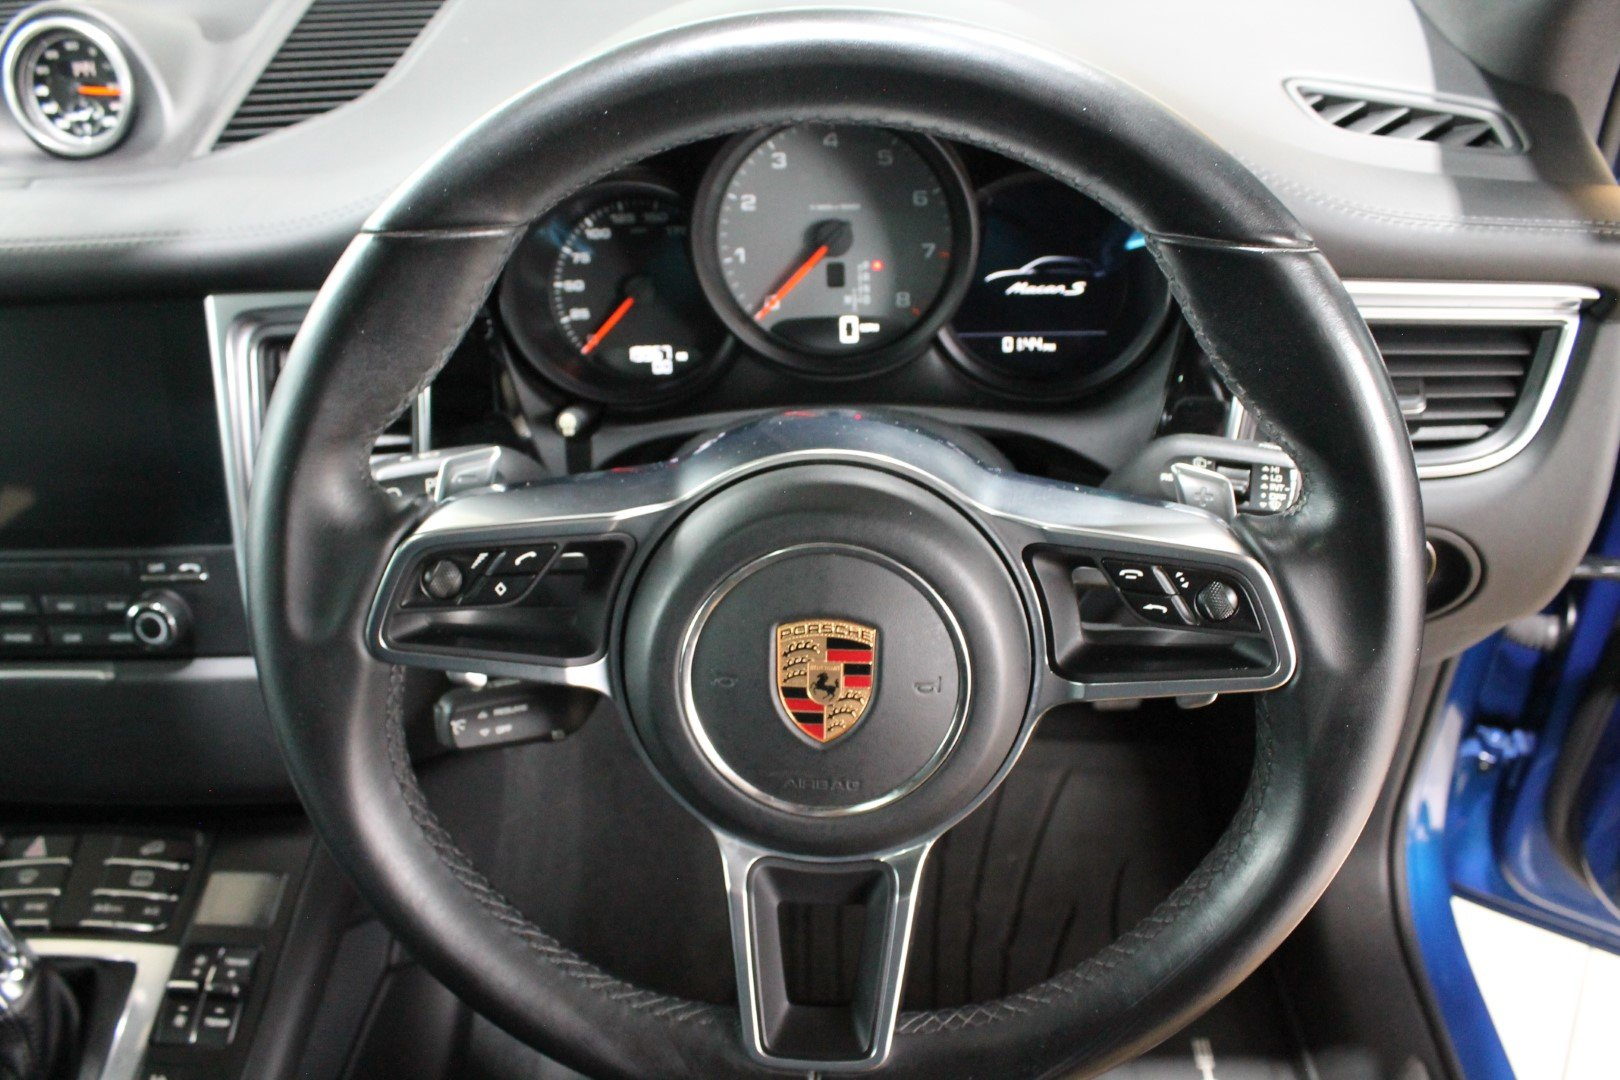 2016 Porsche Macan 3.0 S - NOW SOLD - MORE REQUIRED For Sale (picture 9 of 12)